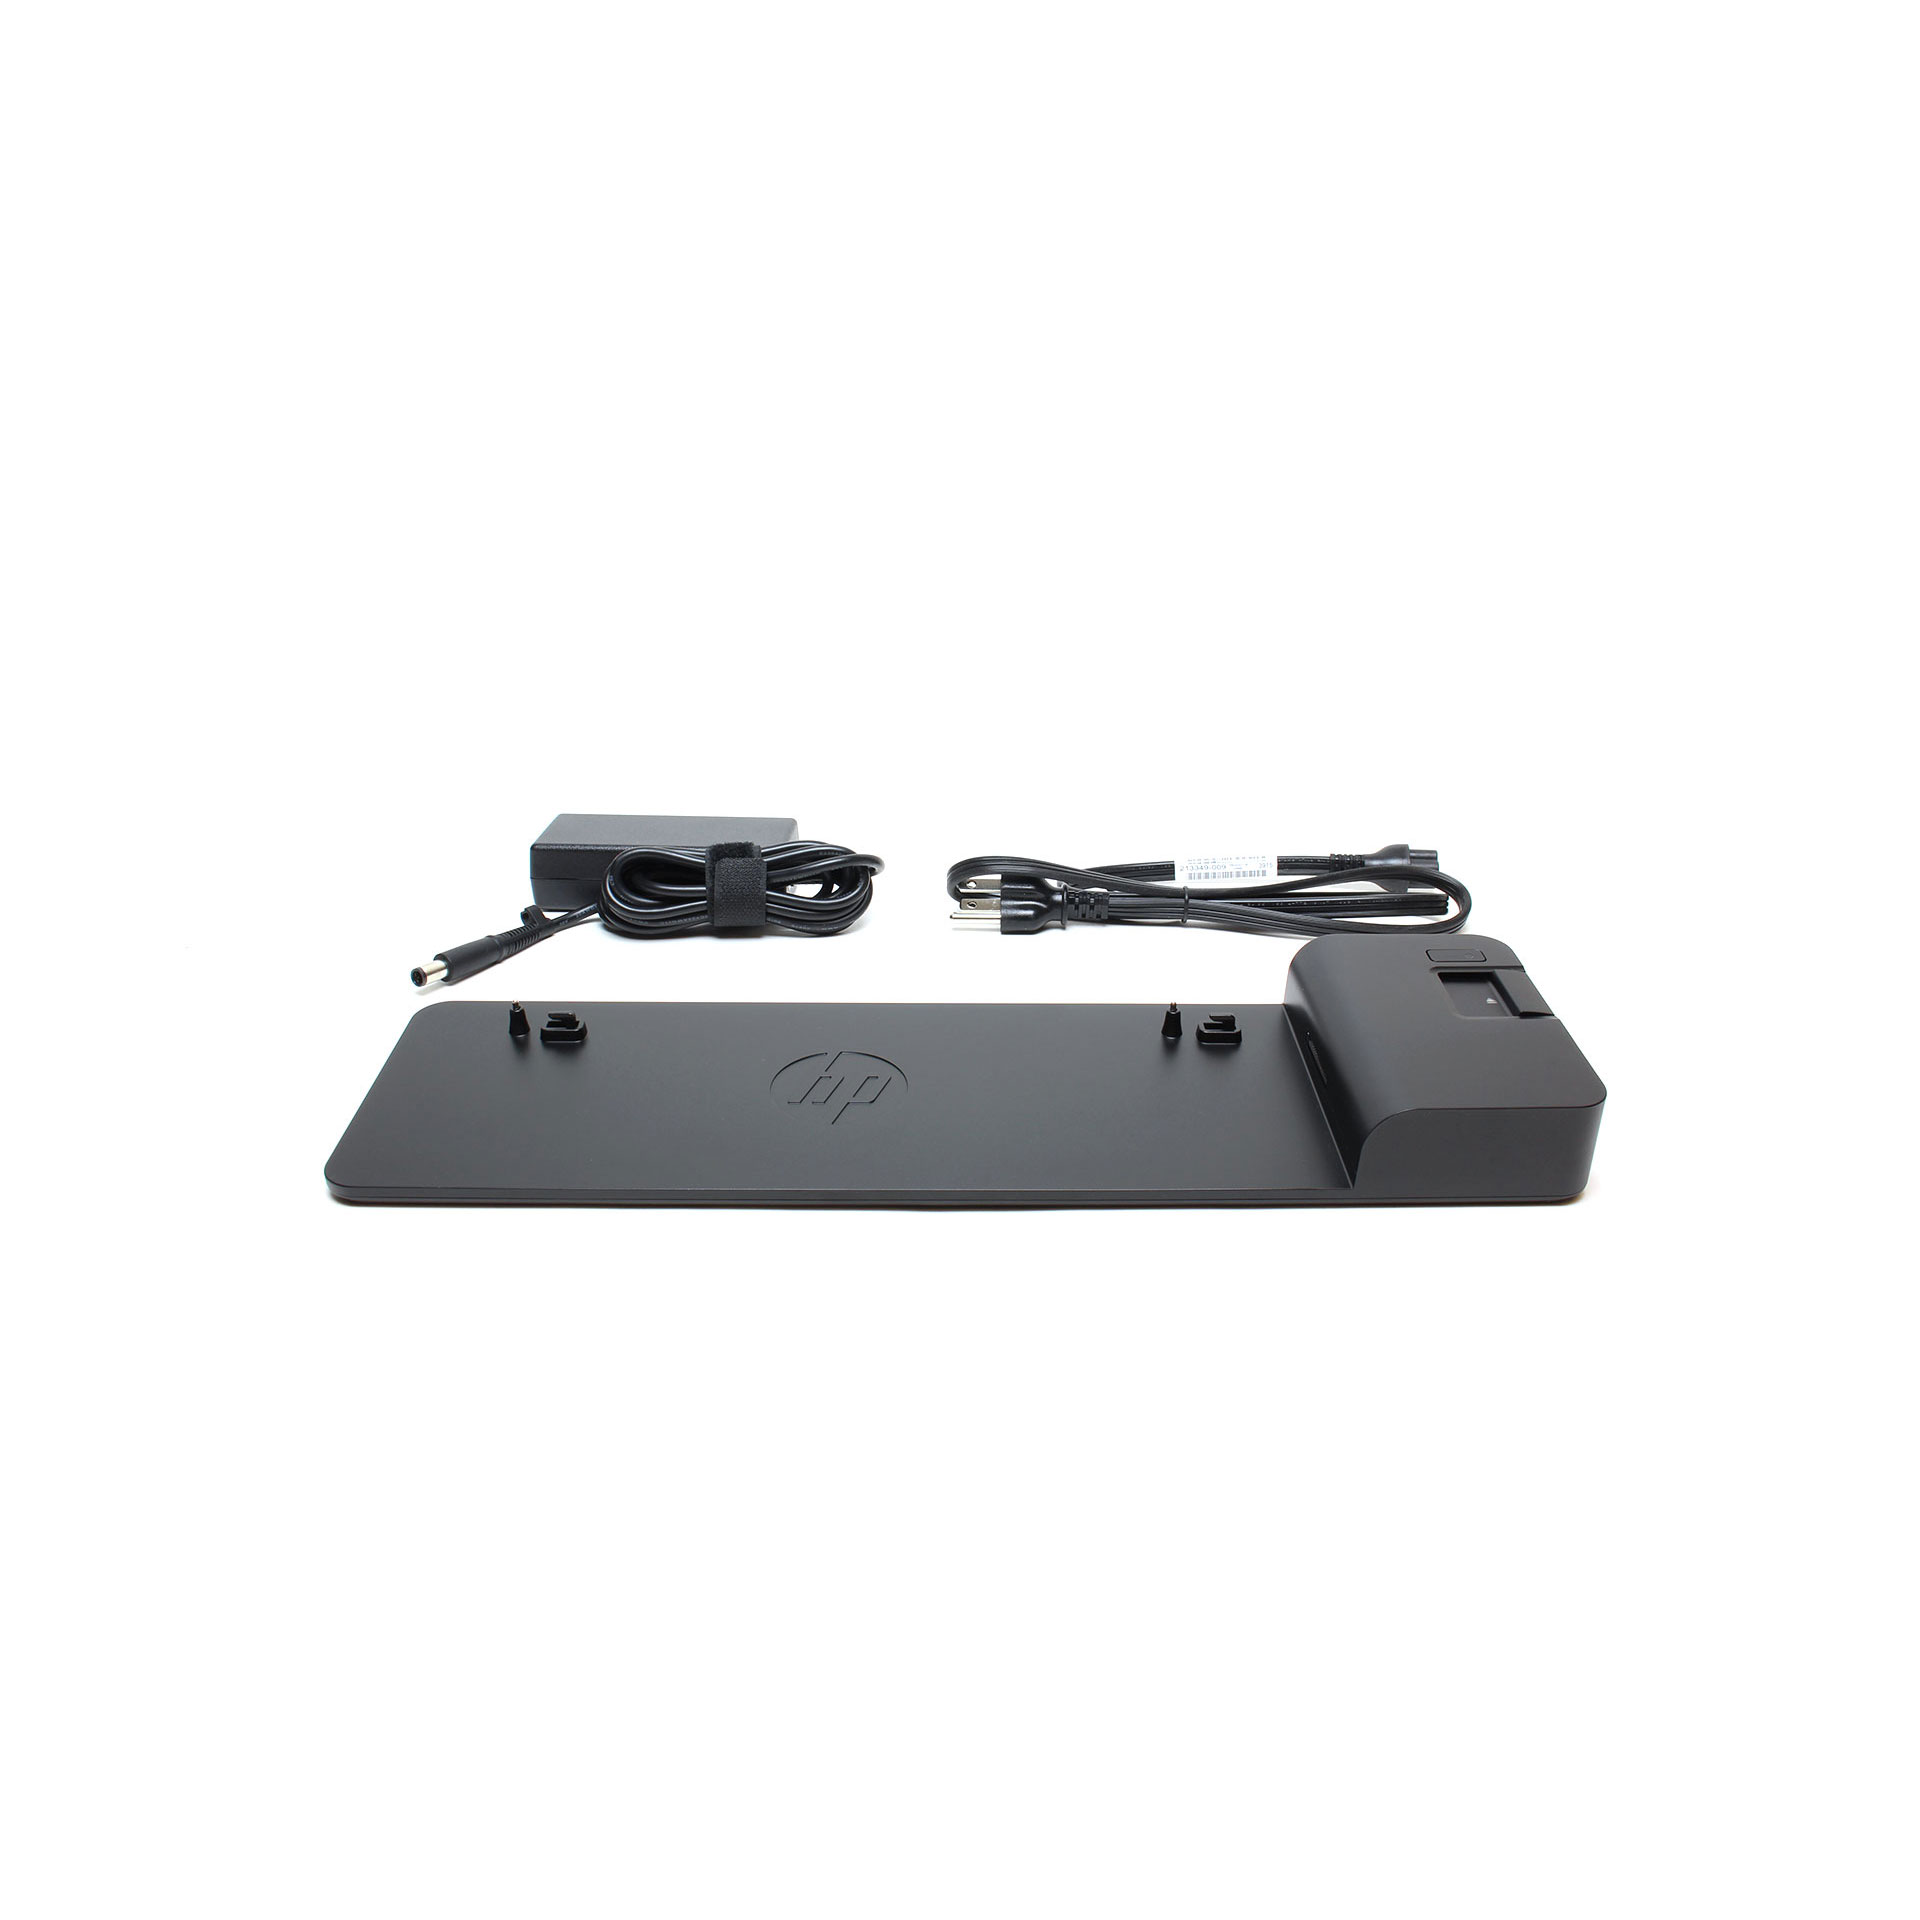 HP UltraSlim Docking Station D9Y32UT#ABA